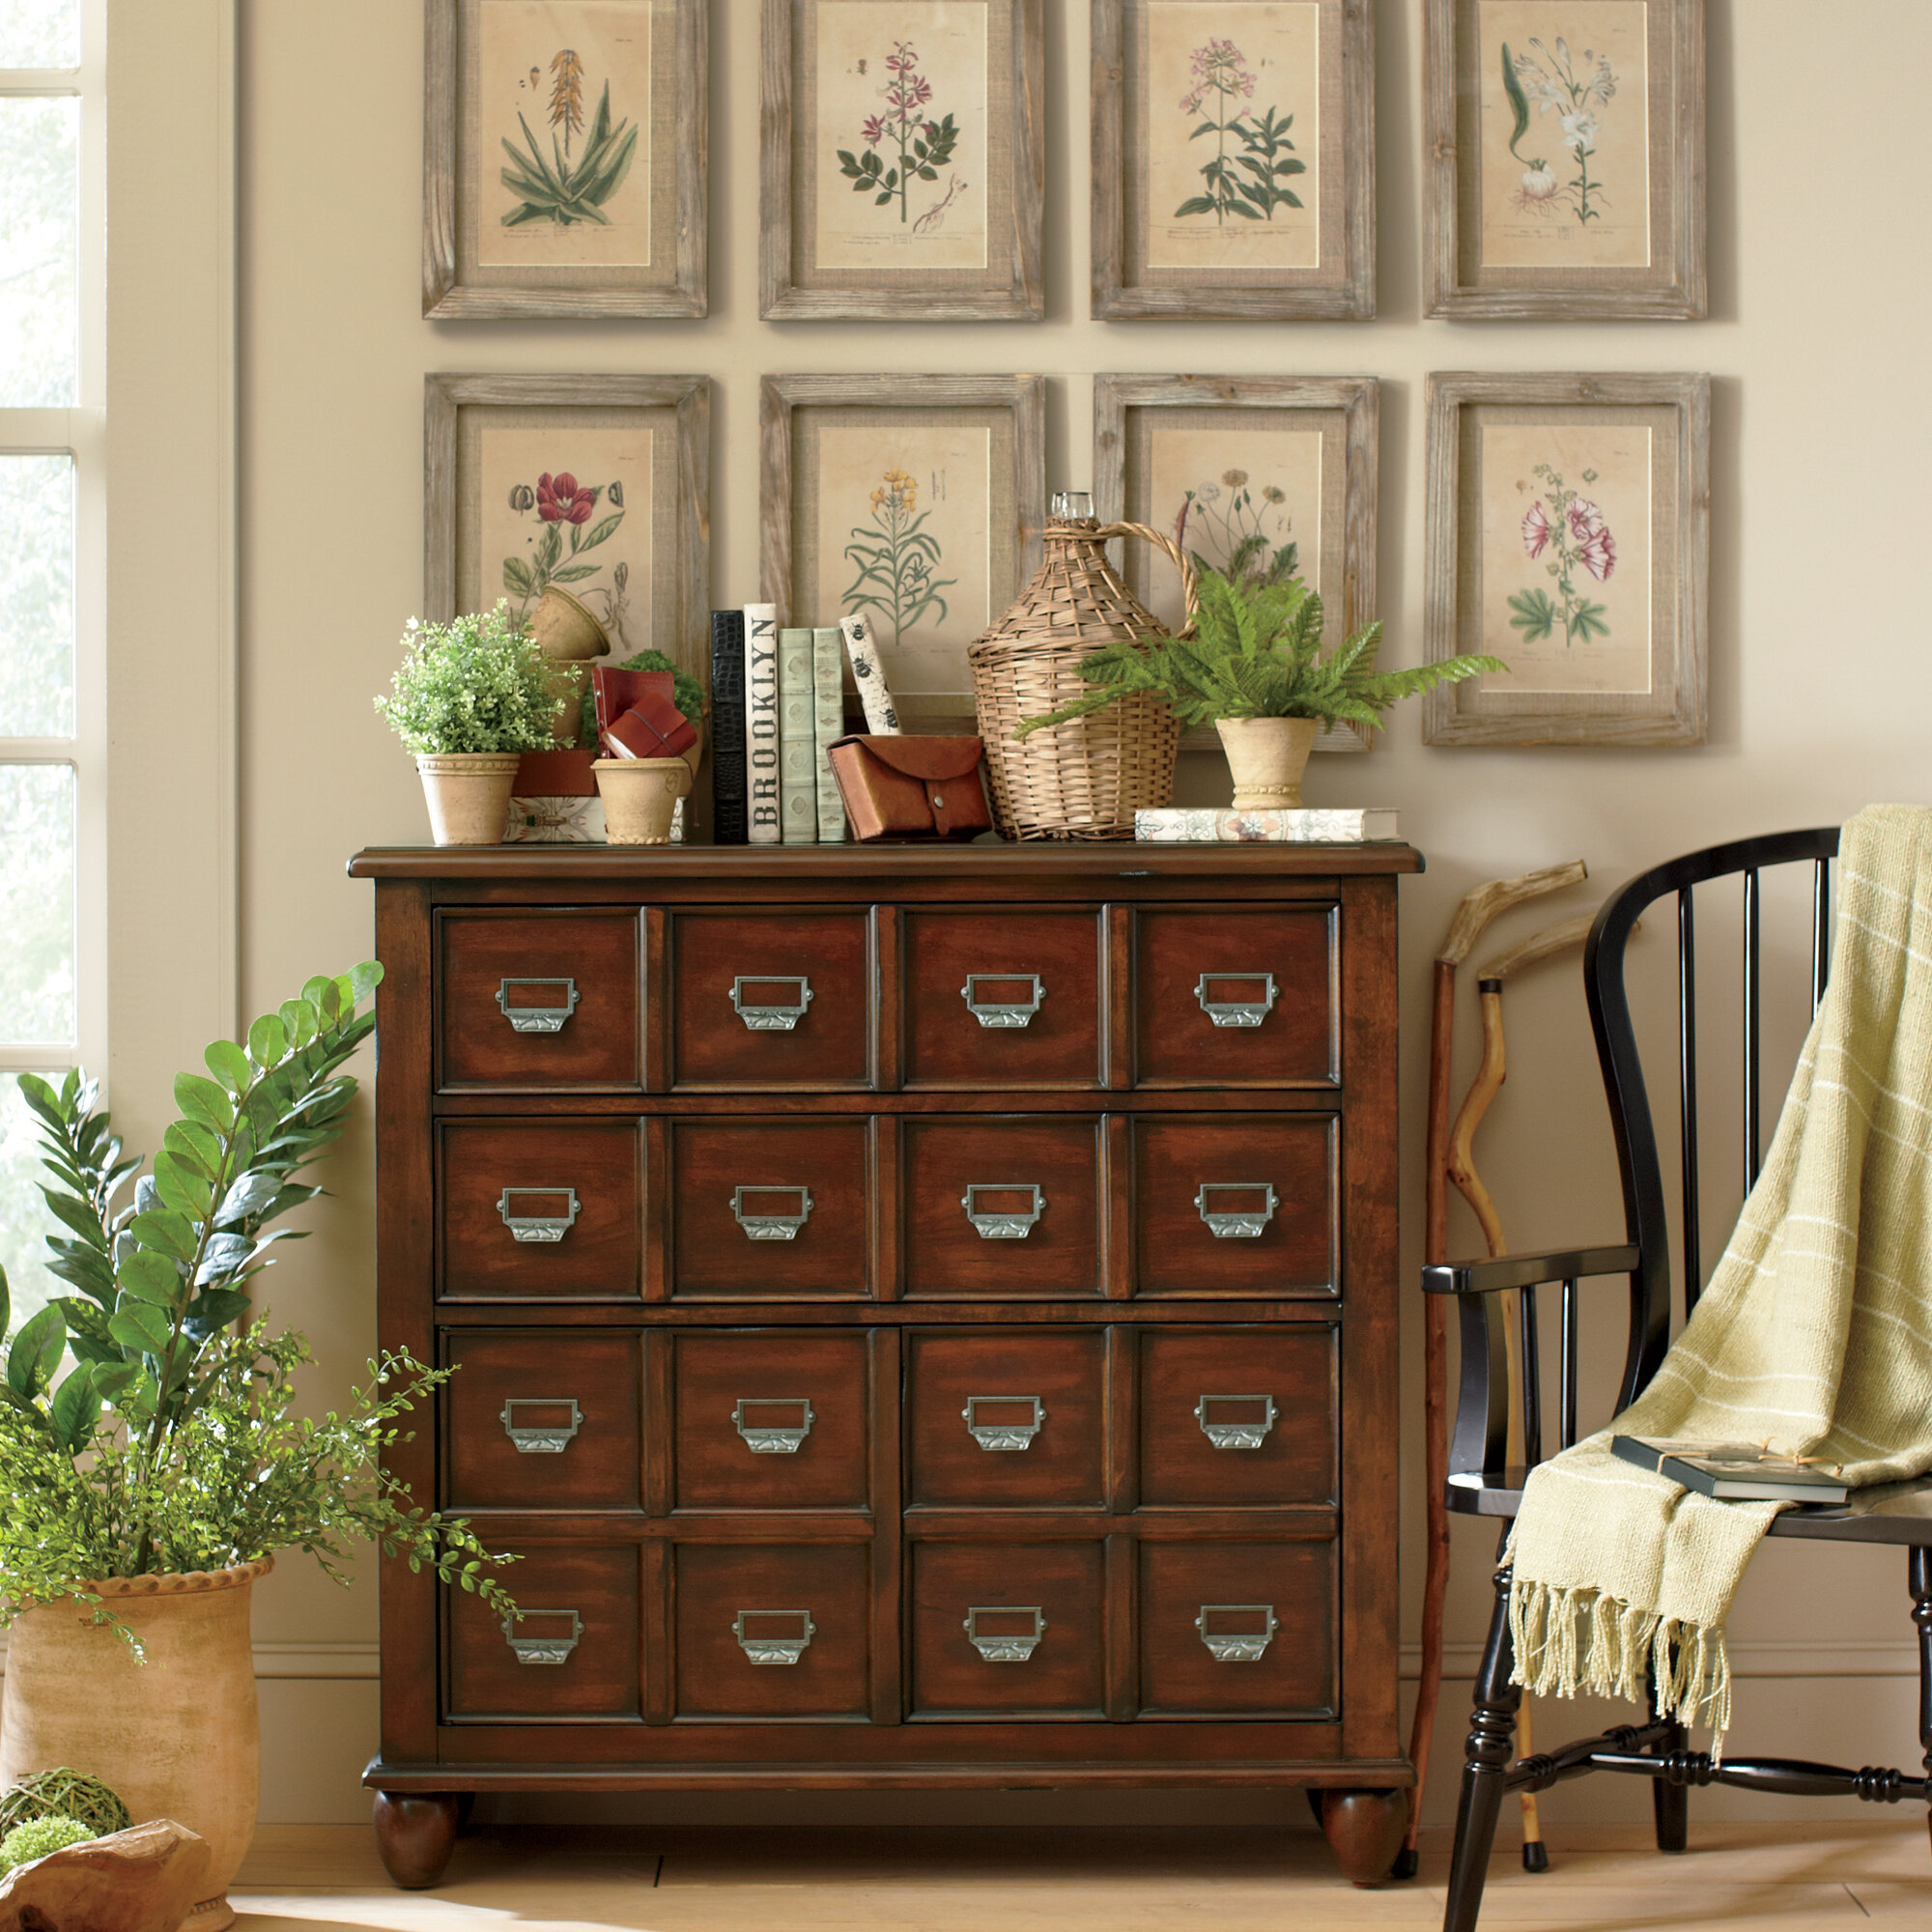 Middleton Sideboard  For the Home  Pinterest  Birch